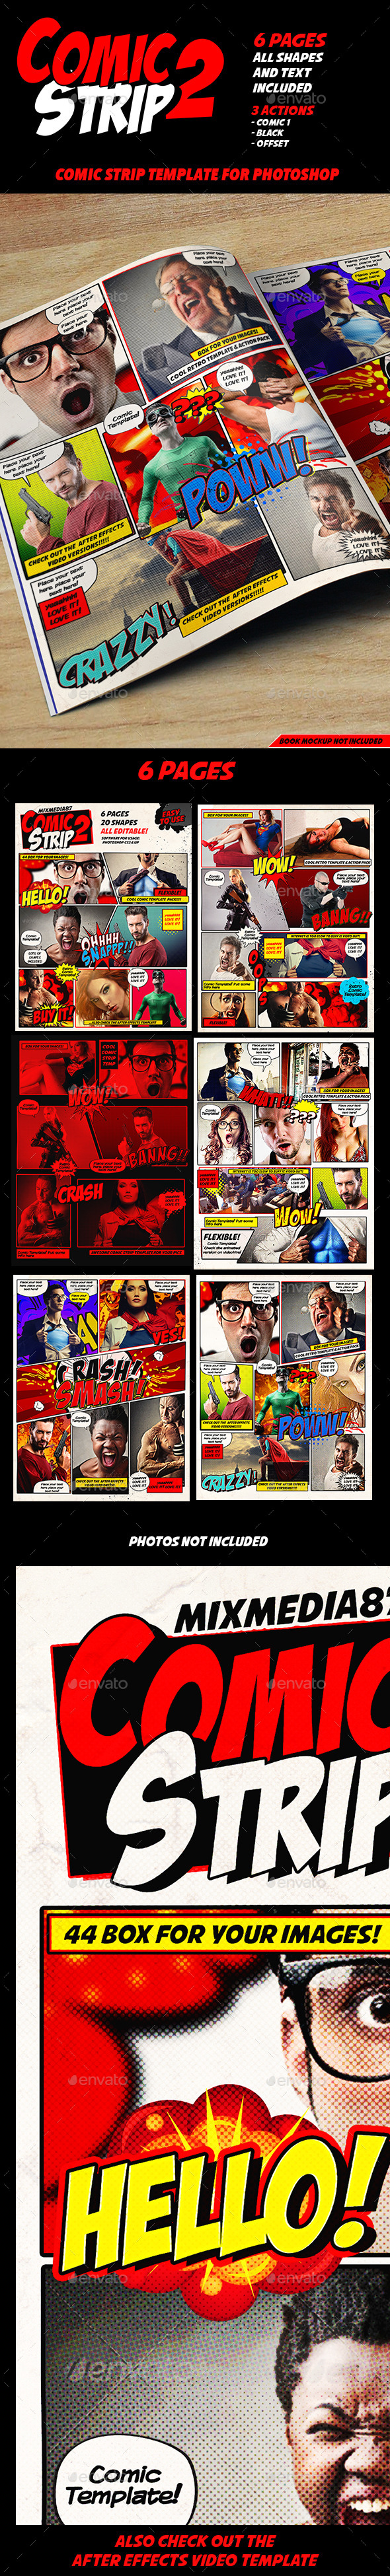 GraphicRiver Comic Strip Template 11341684